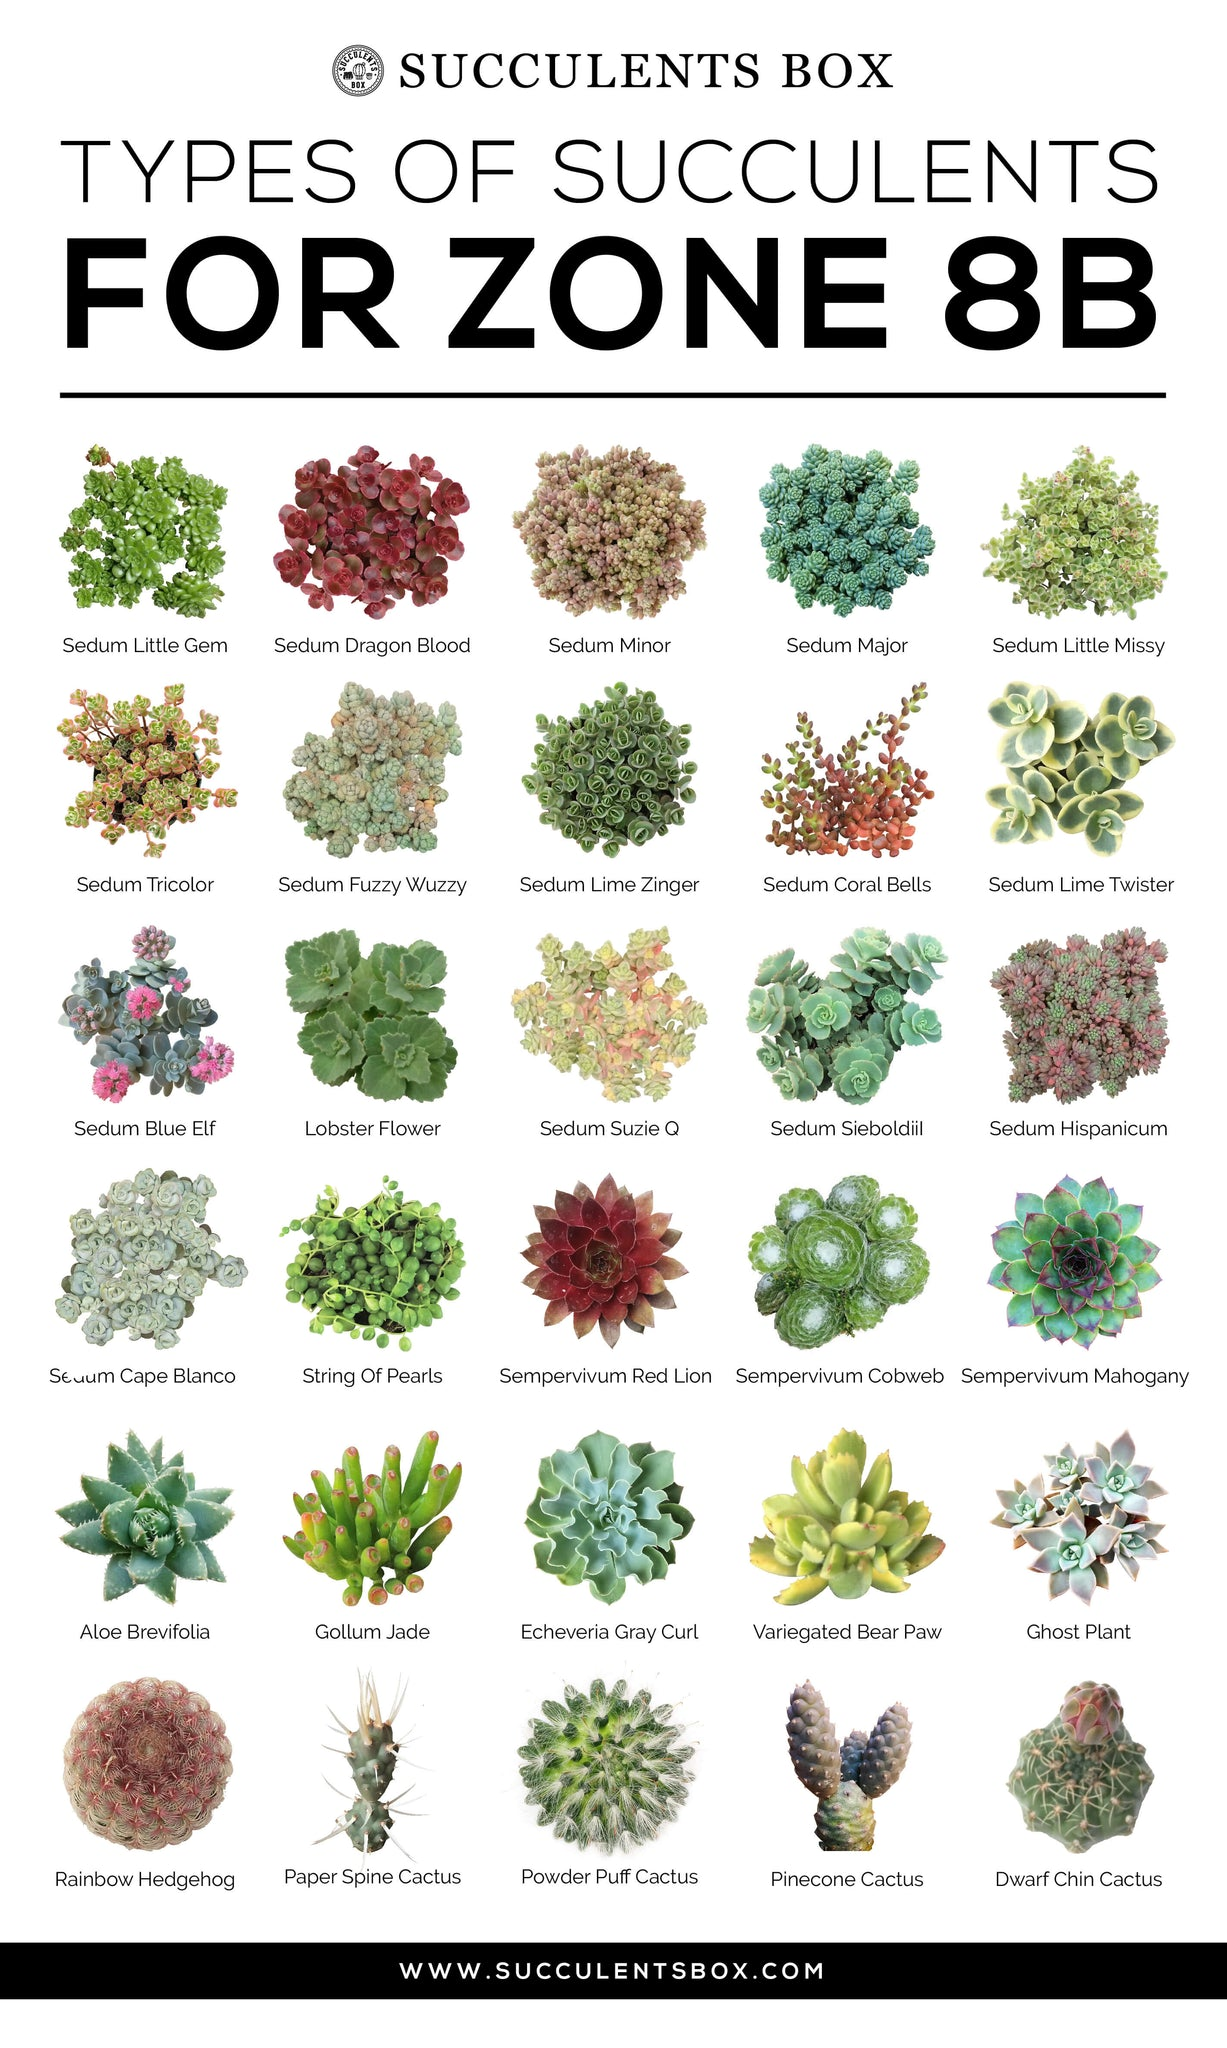 Types of Succulents for Zone